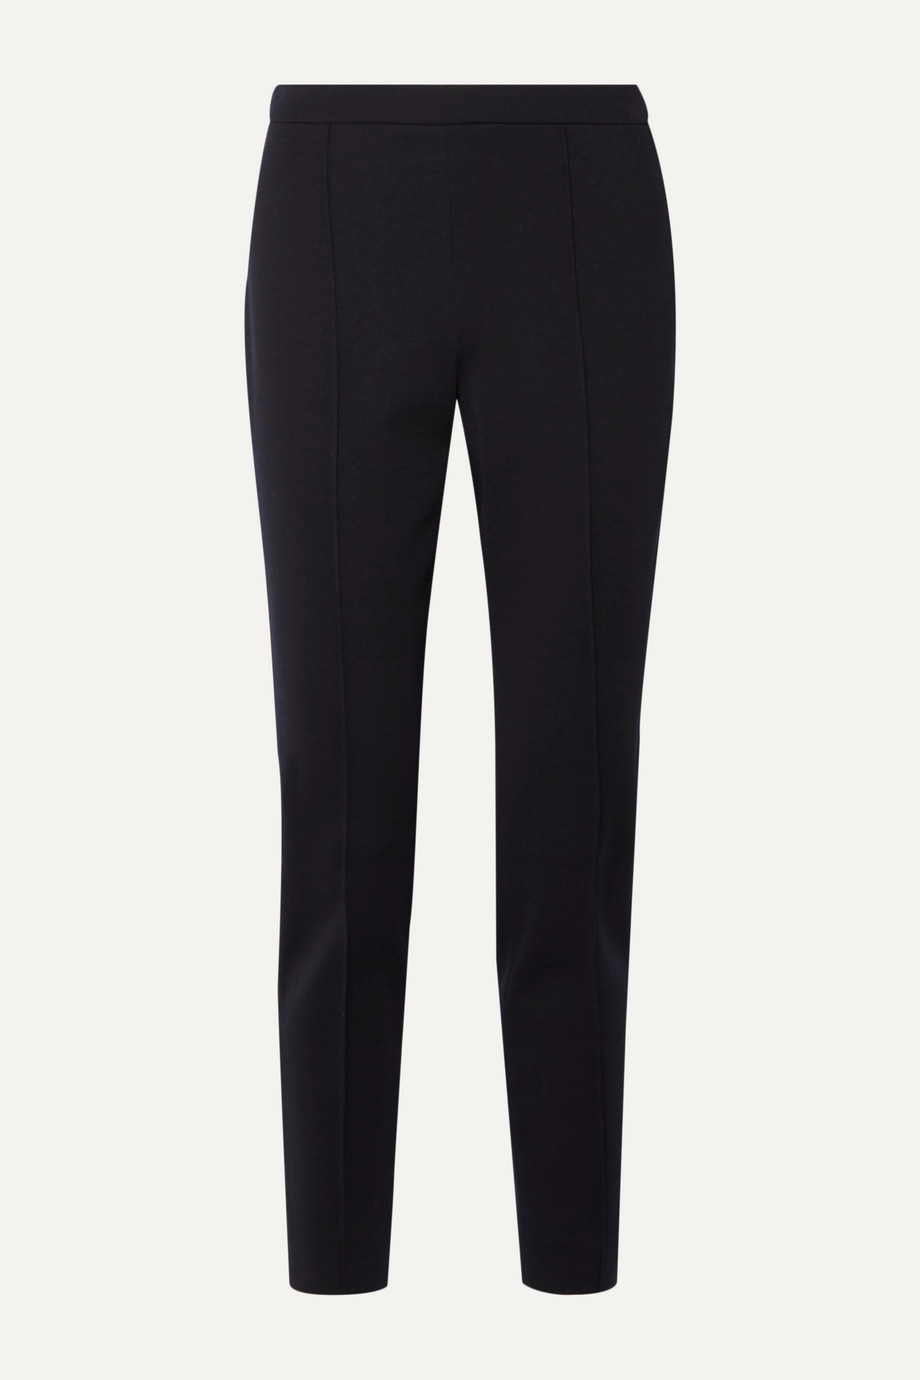 Loro Piana Wool-blend straight-leg pants